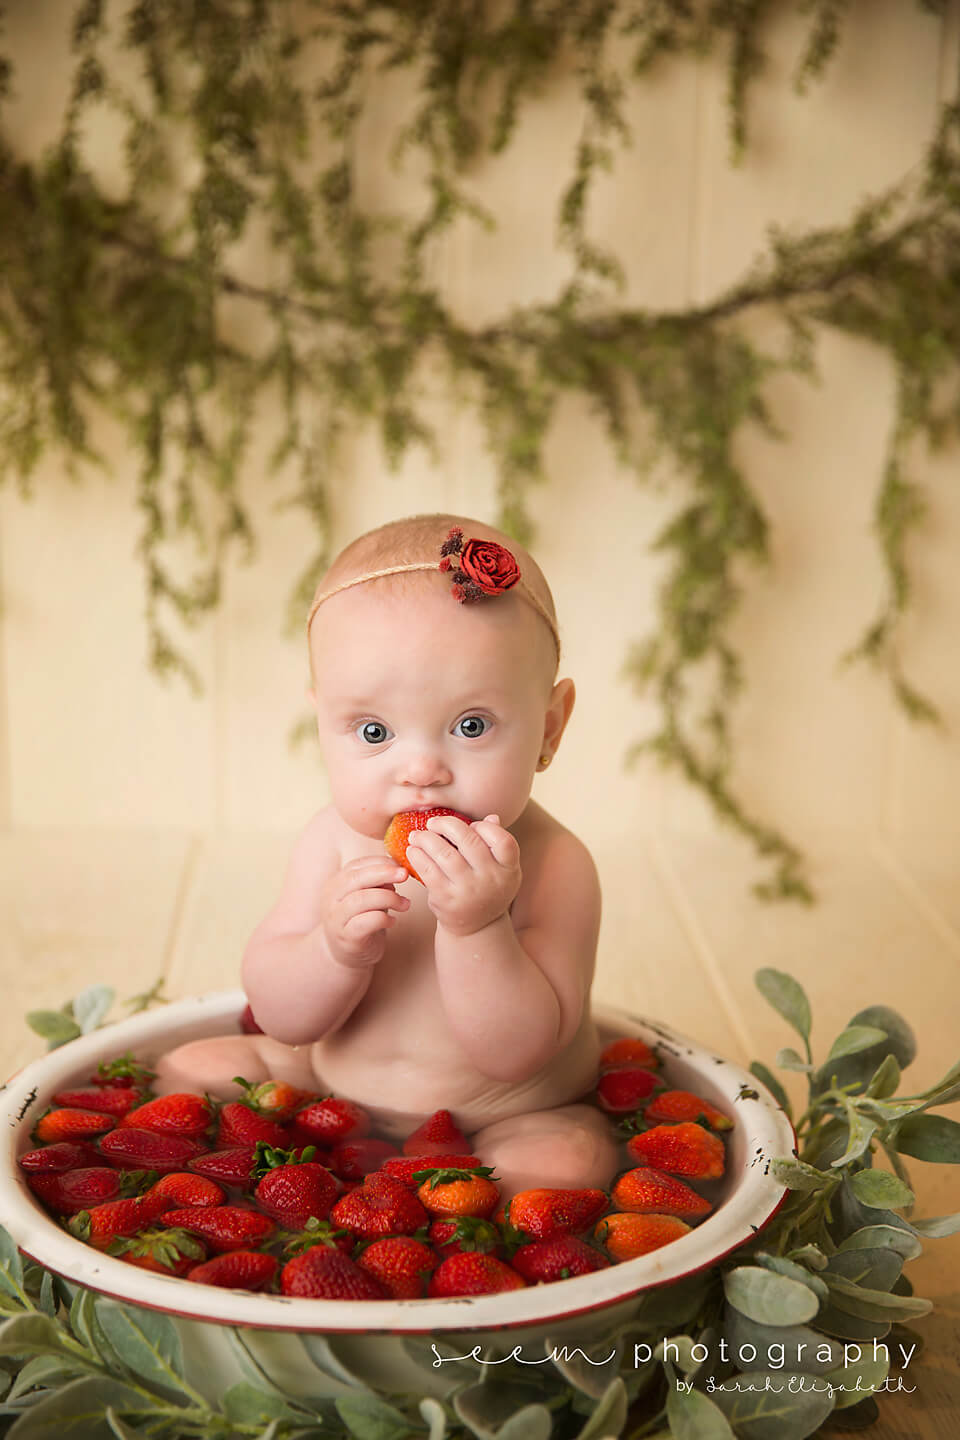 SEEM photography Baby Strawberry Bath